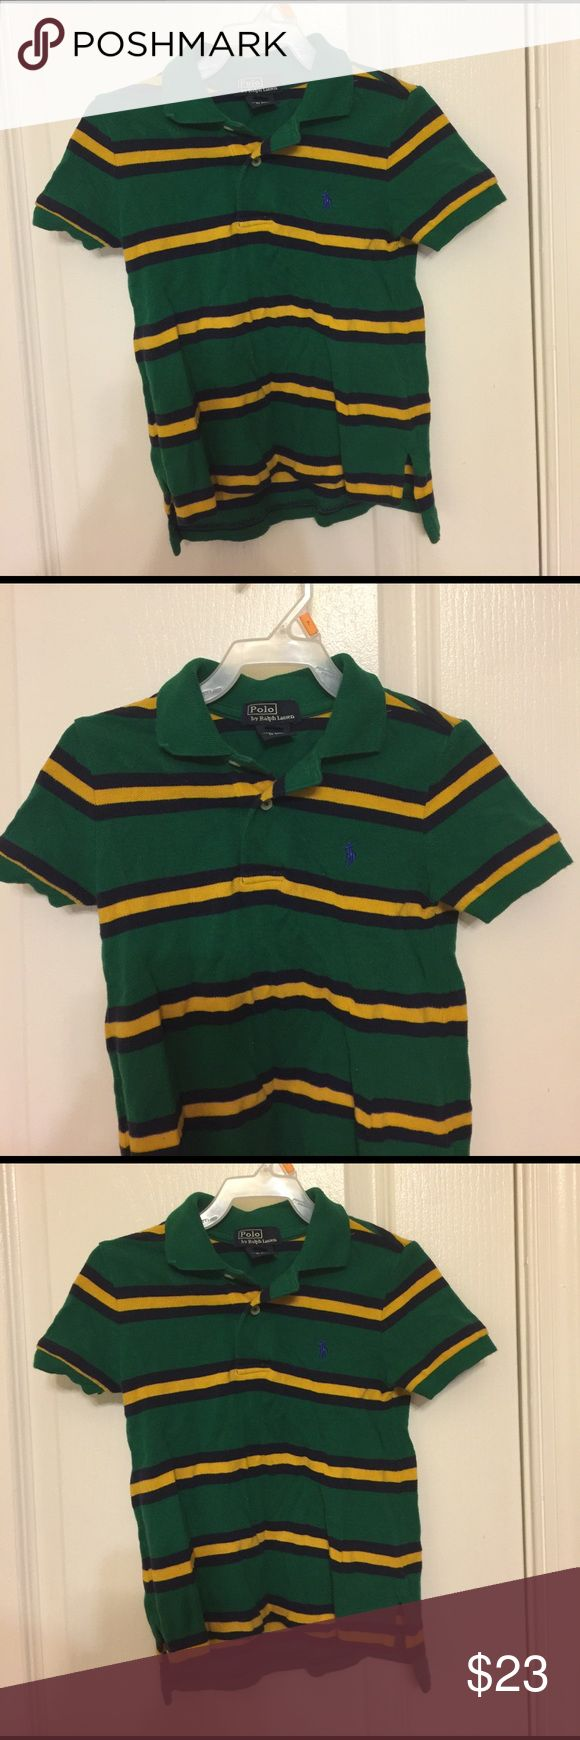 Ralph Lauren striped polo, toddler boy's 2T green Rugby inspired stripes give this version of Ralph Lauren 's iconic polo shirt a sporty twist. Ribbed polo collar front two button placket short sleeves with ribbed armbands signature embroidered pony at the left chest Tennis tail. Fairly used from a smoke and pet free and clean environment. Color: green/navy/yellow Polo by Ralph Lauren Shirts & Tops Polos